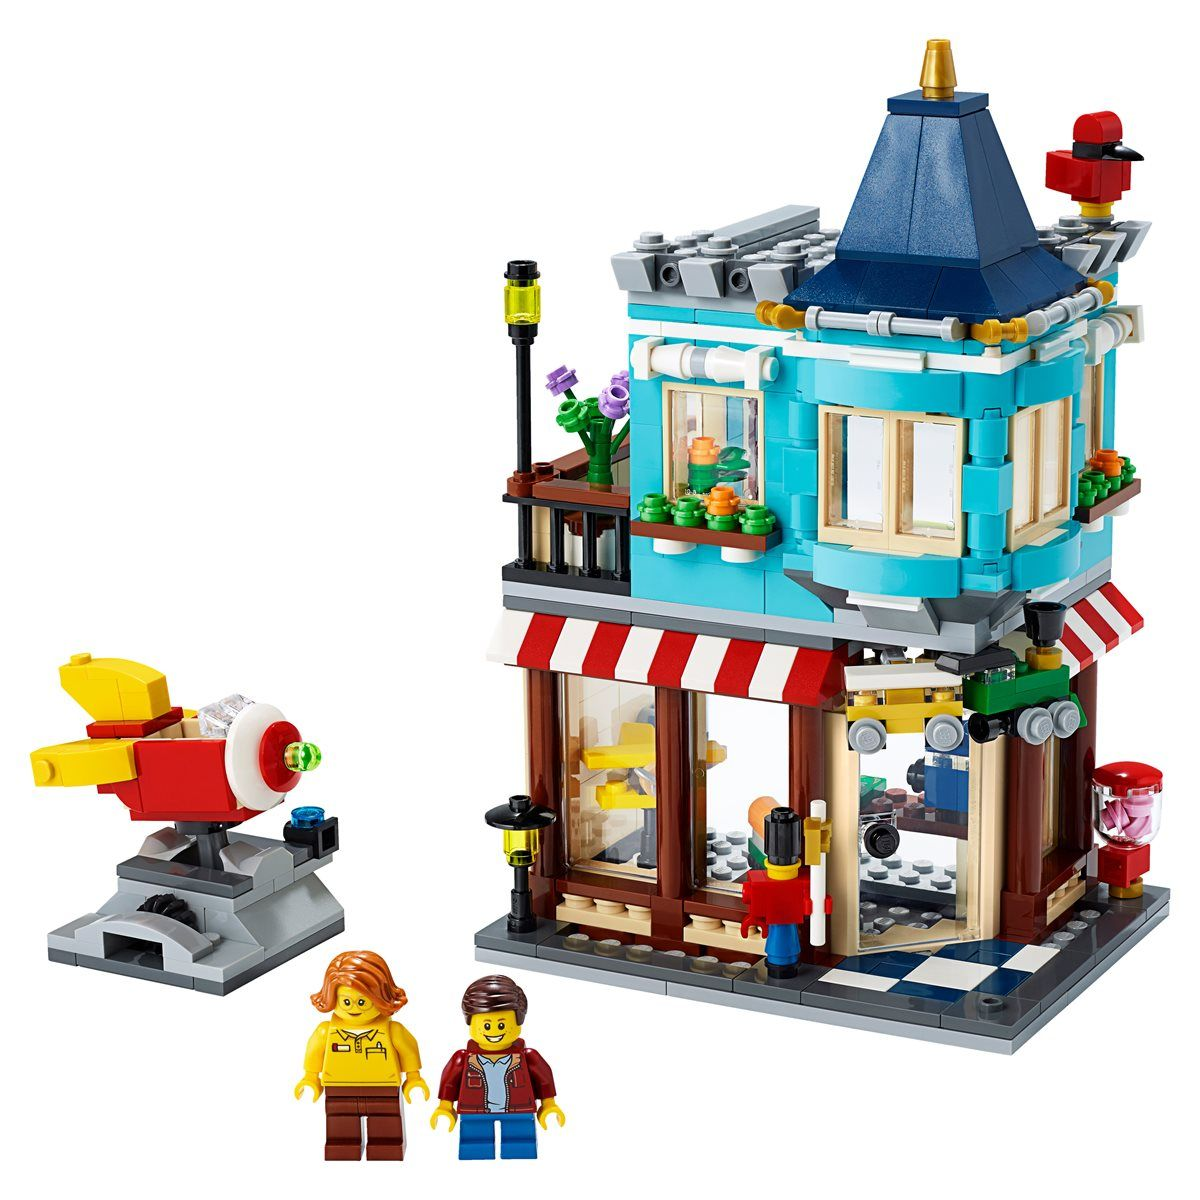 Buy LEGO 31105 Creator Townhouse Toy Store at